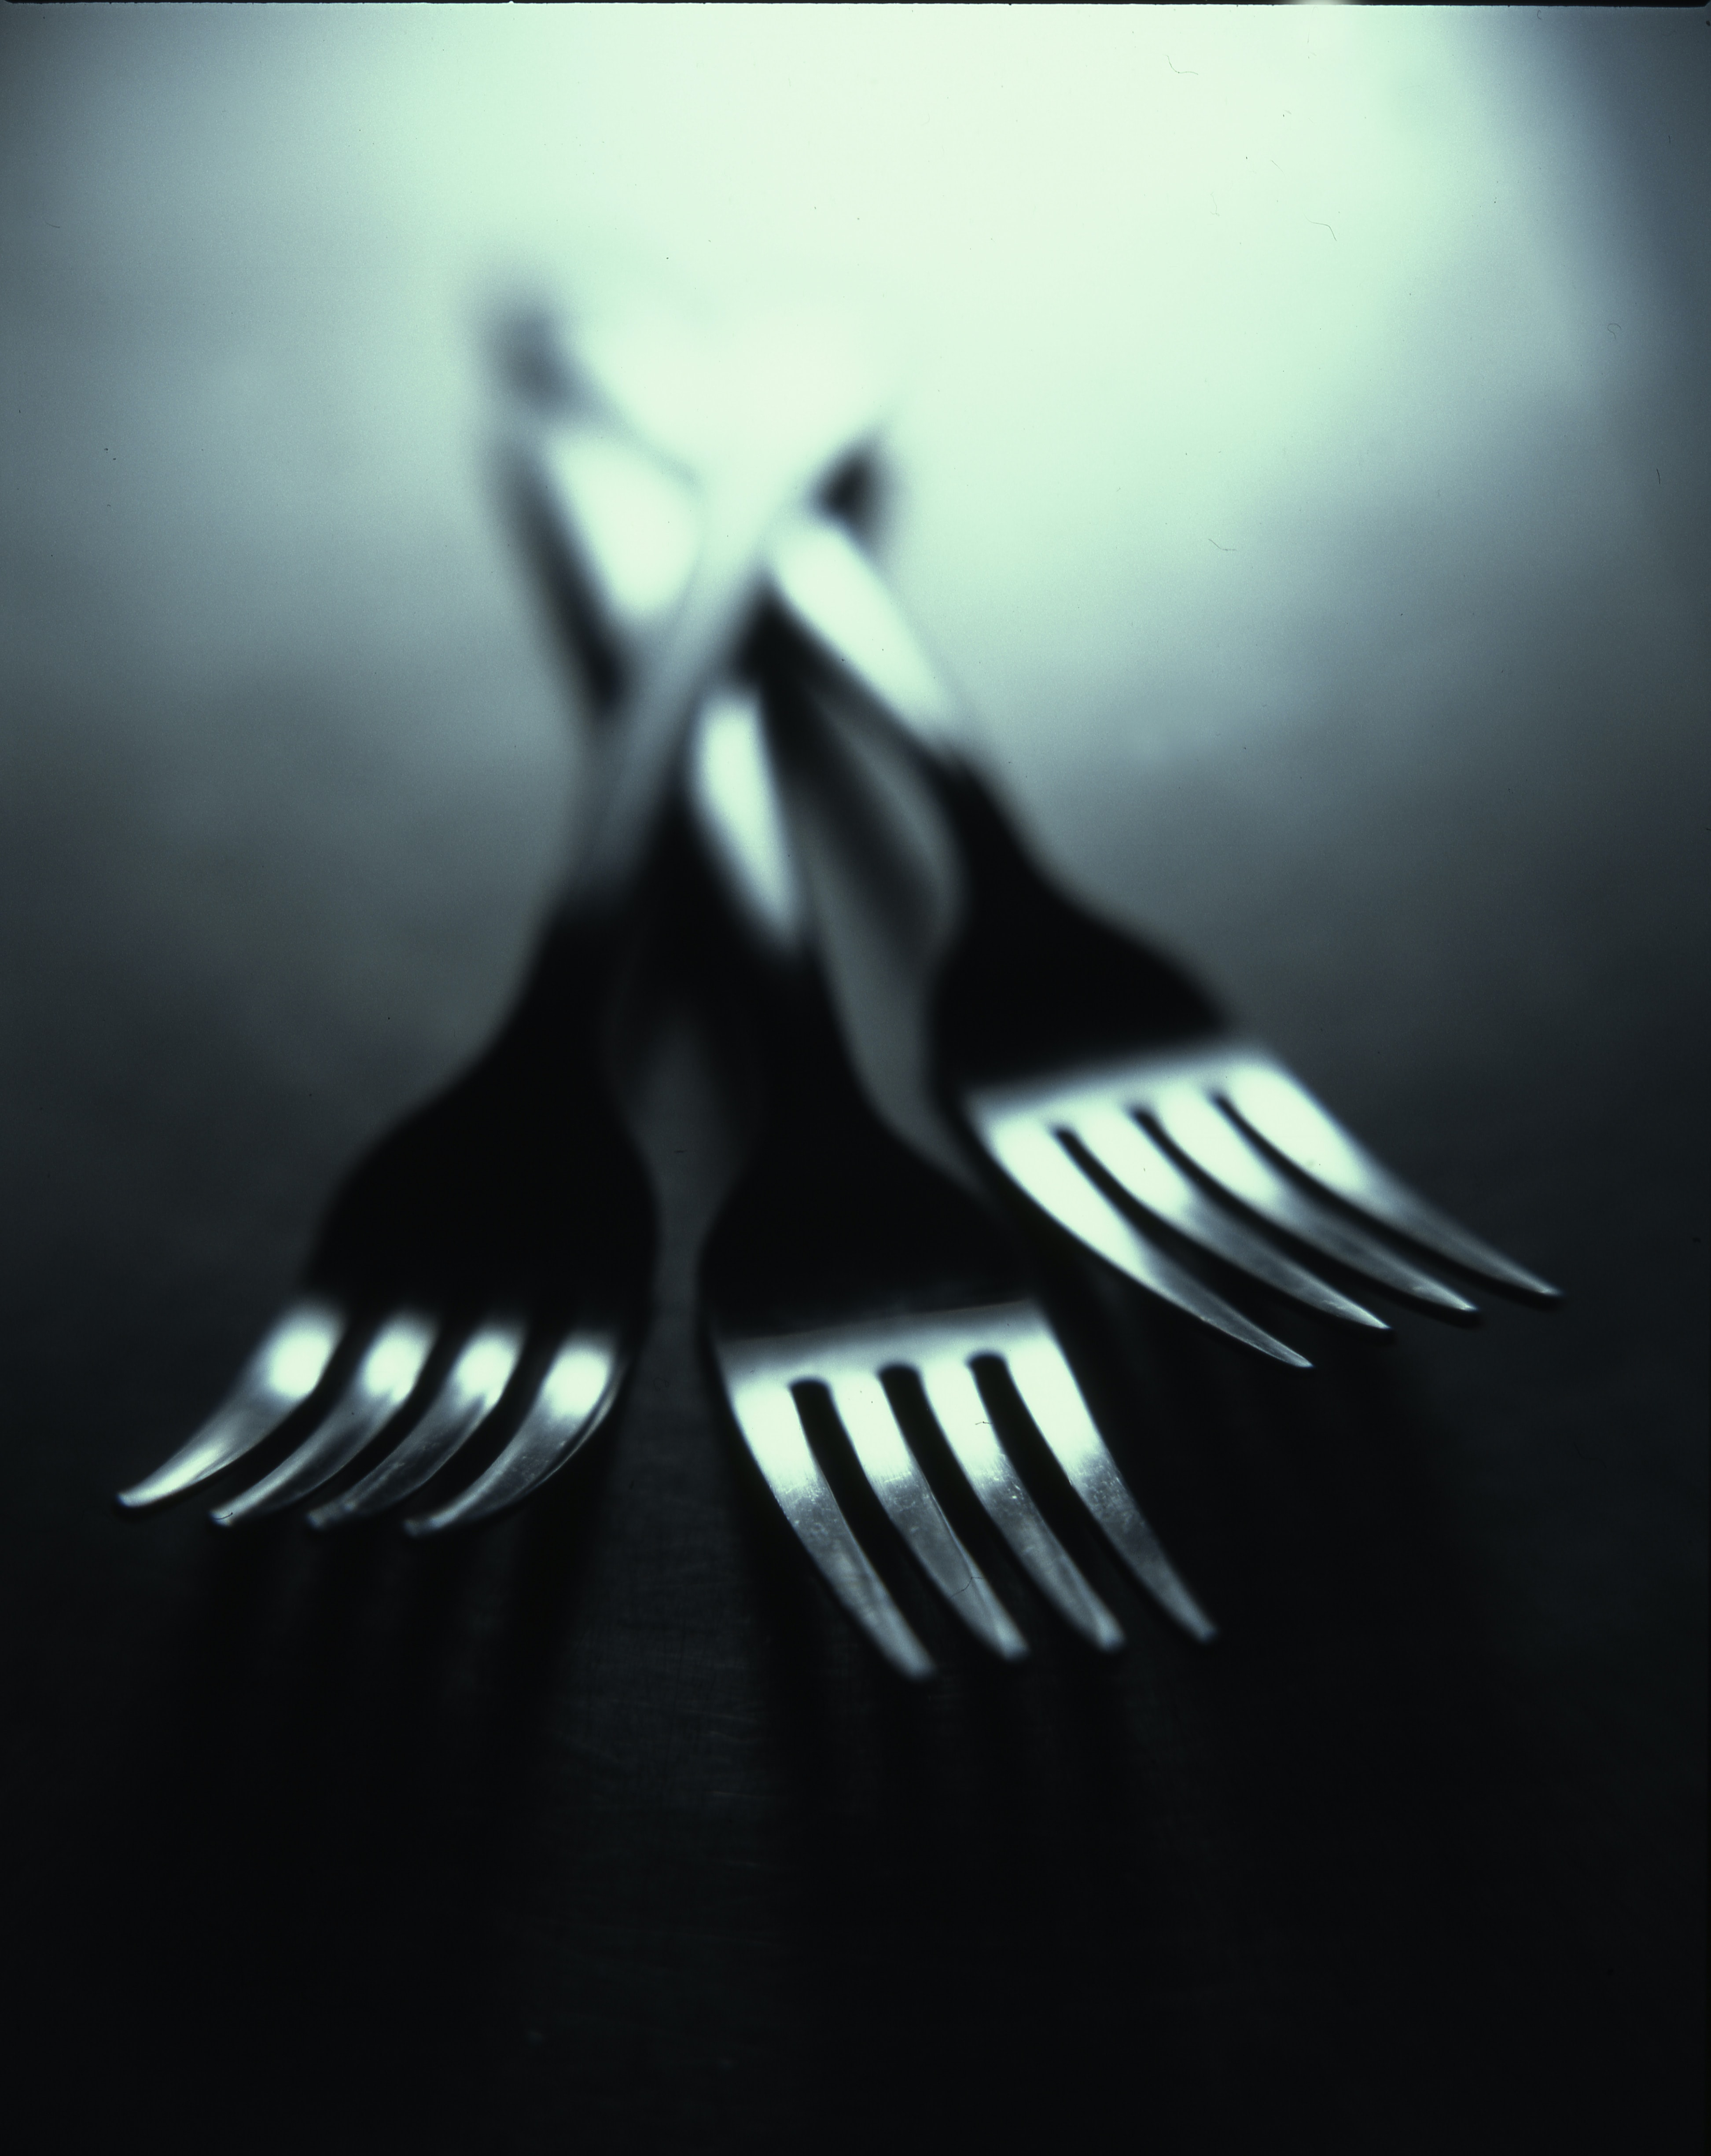 shallow focus photography of three forks